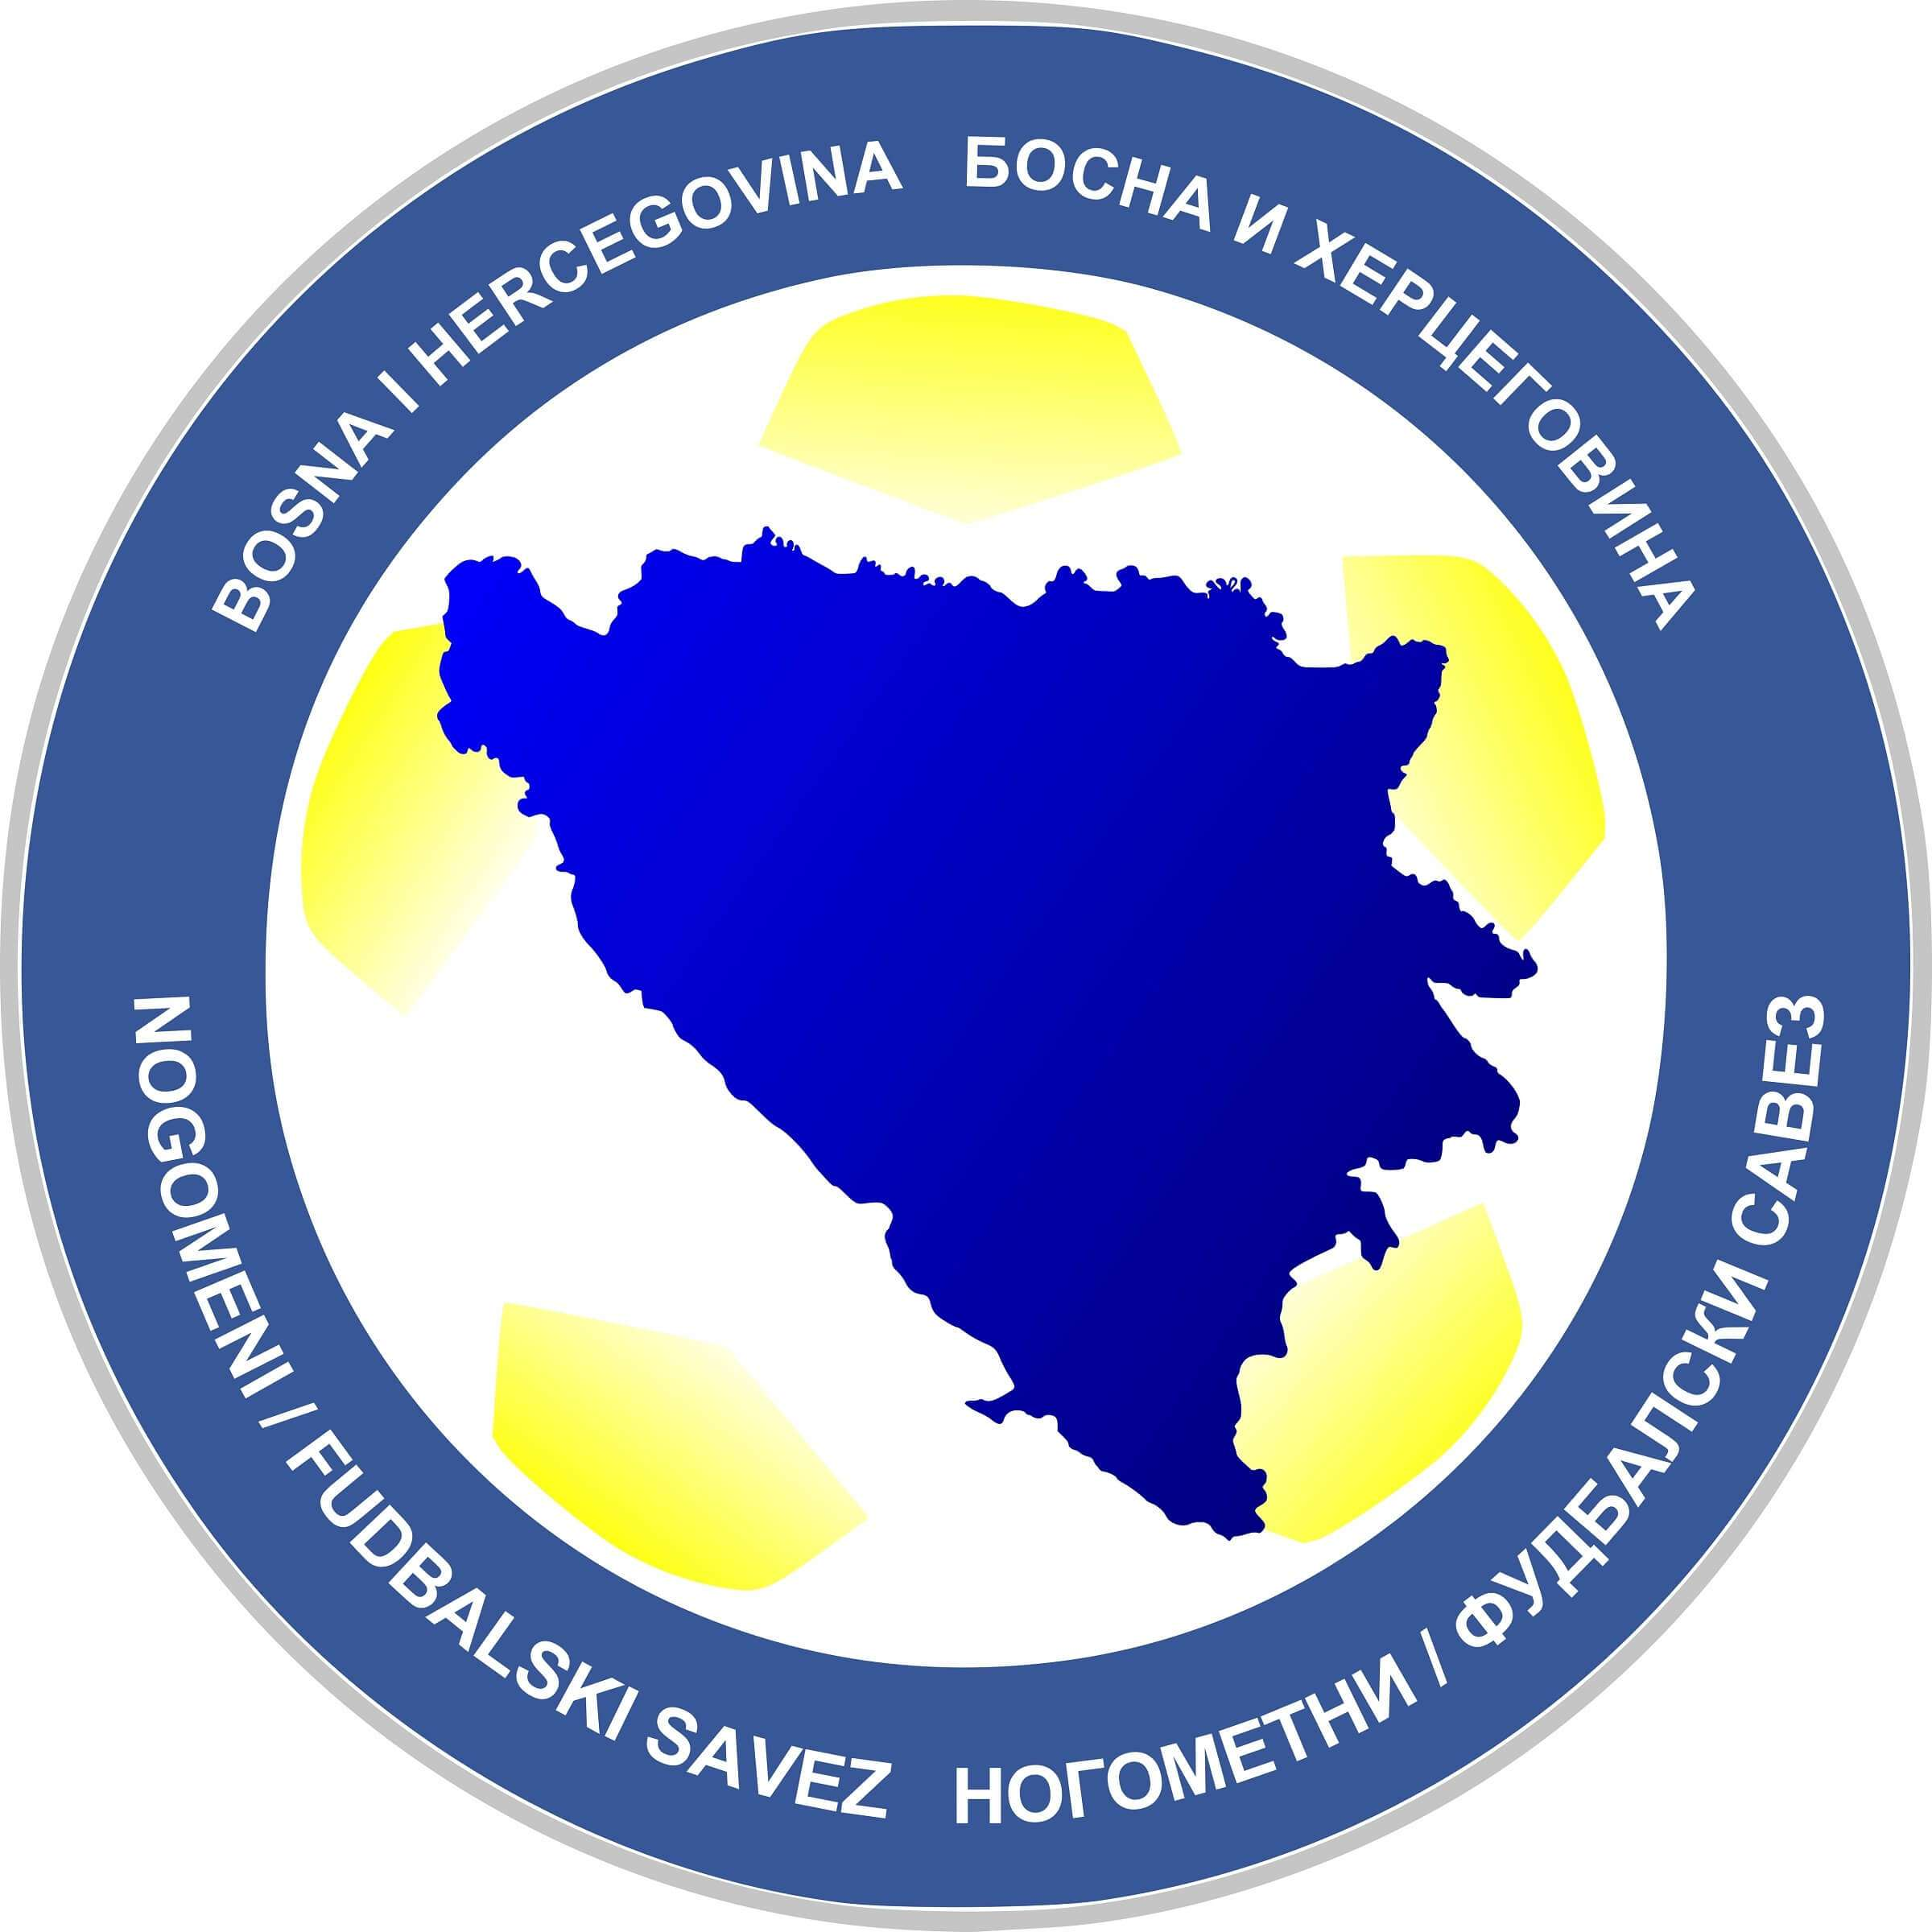 football-federation-of-bosnia-and-herzegovina-bosnia-and-herzegovina-national-football-team-logo1